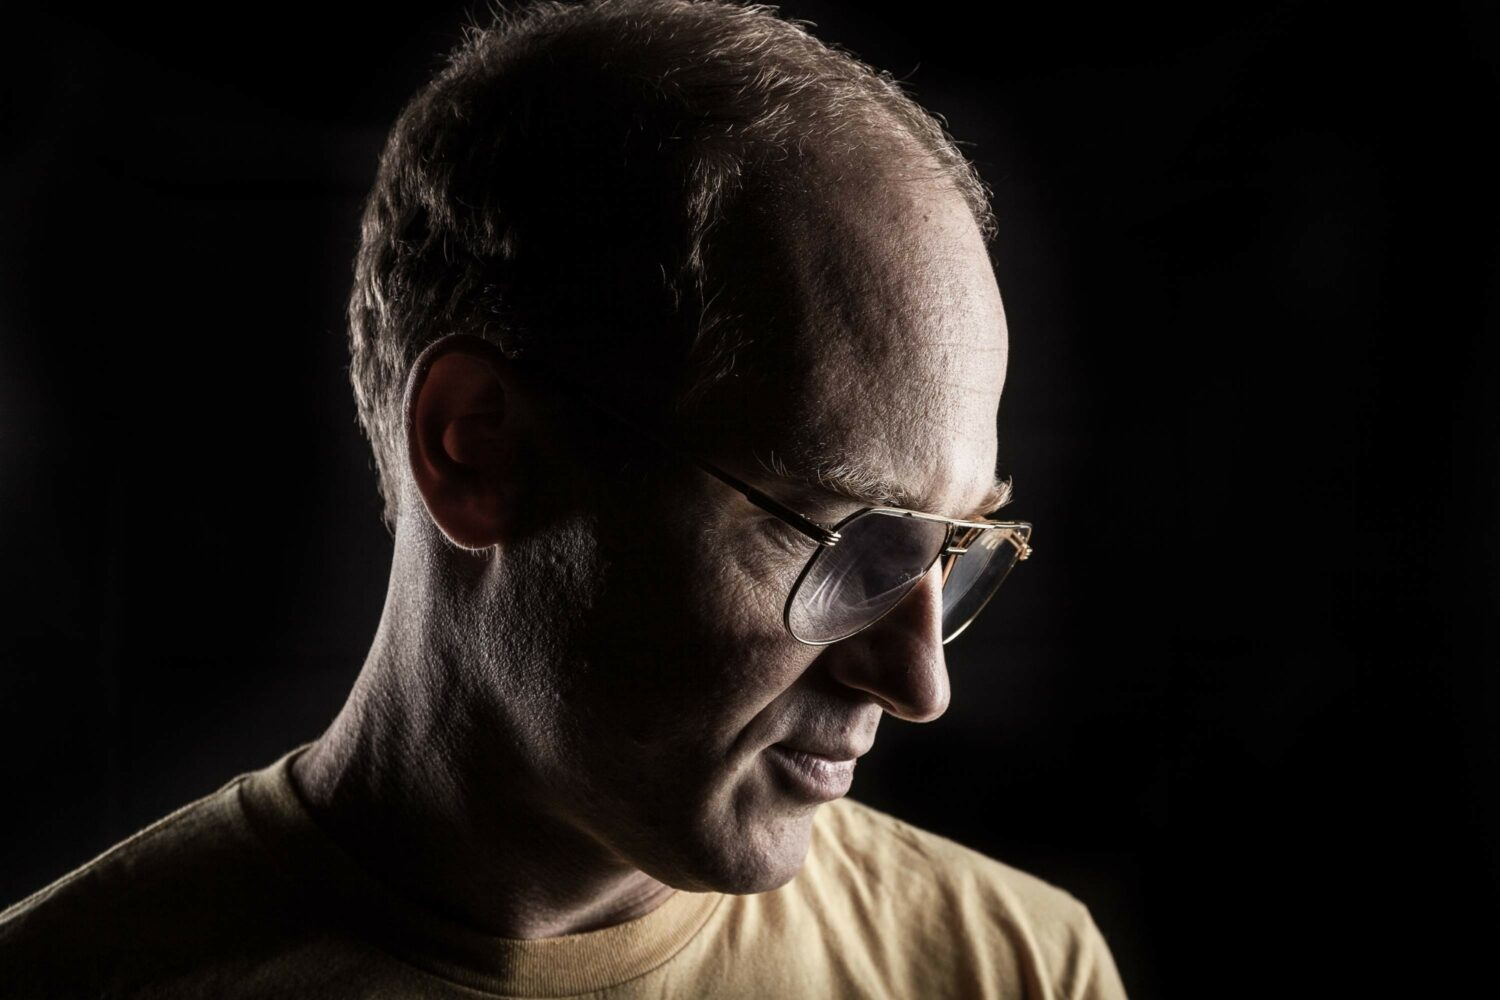 Daphni, Floating Points, Mura Masa and more are set for The Warehouse Project 2017